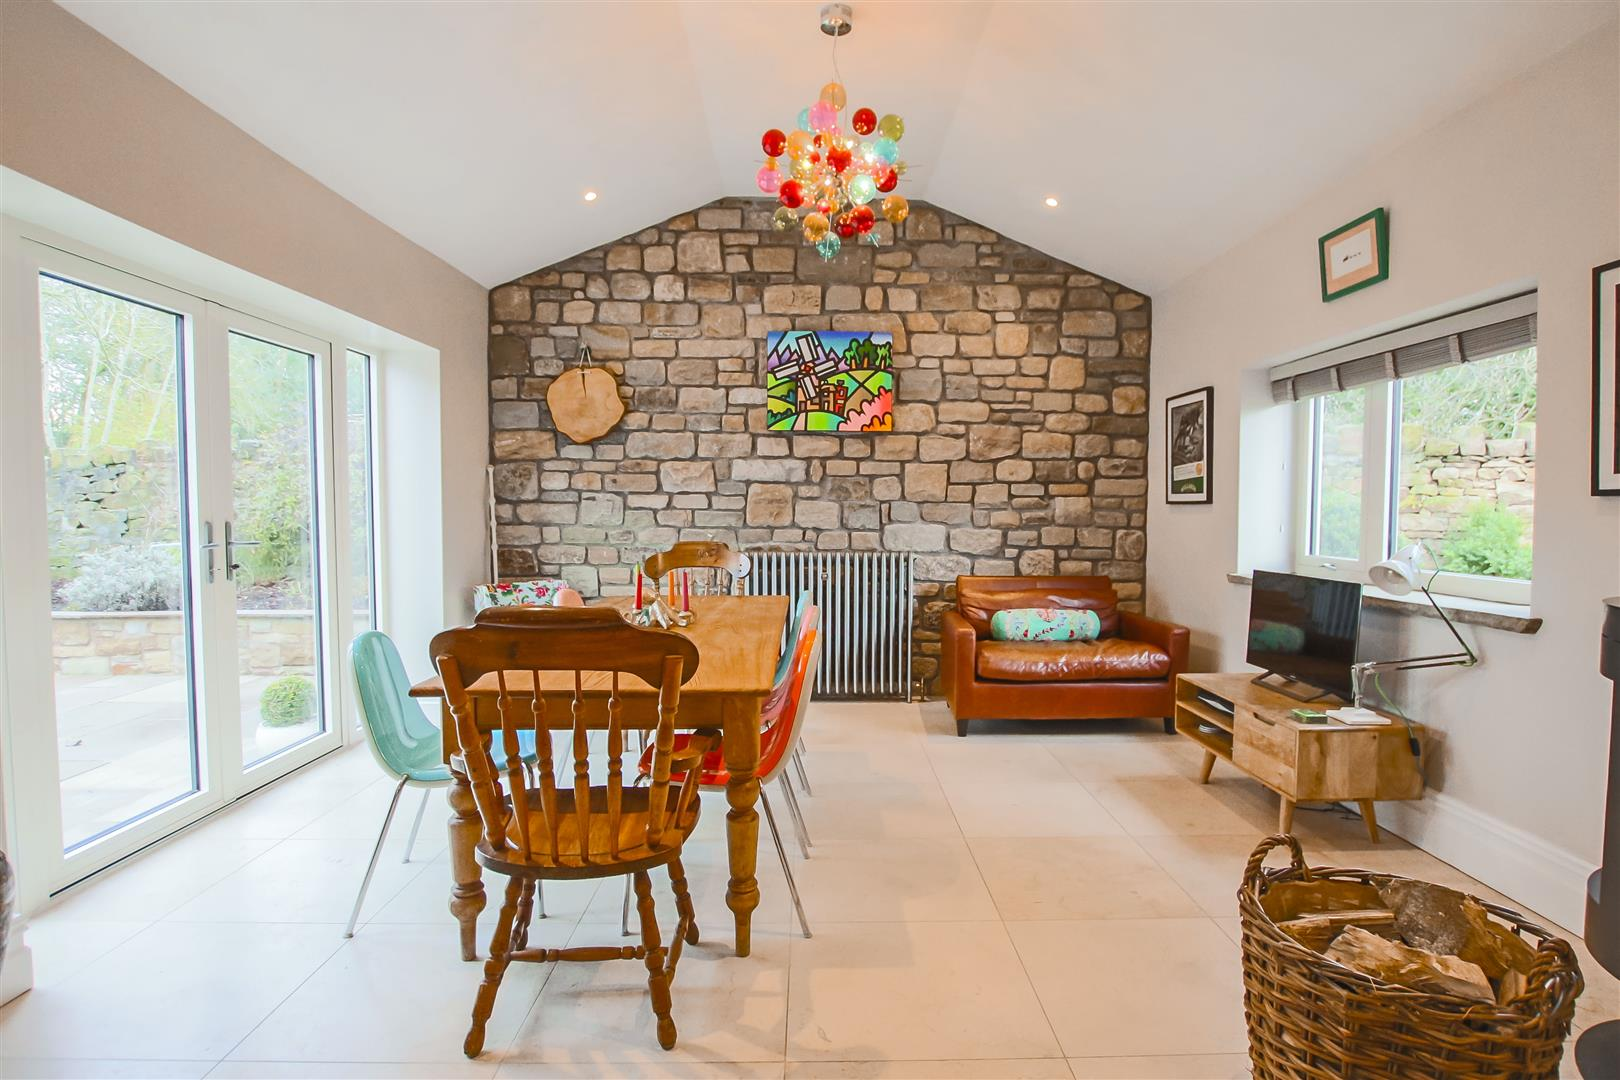 5 Bedroom Detached House For Sale - Dining Area